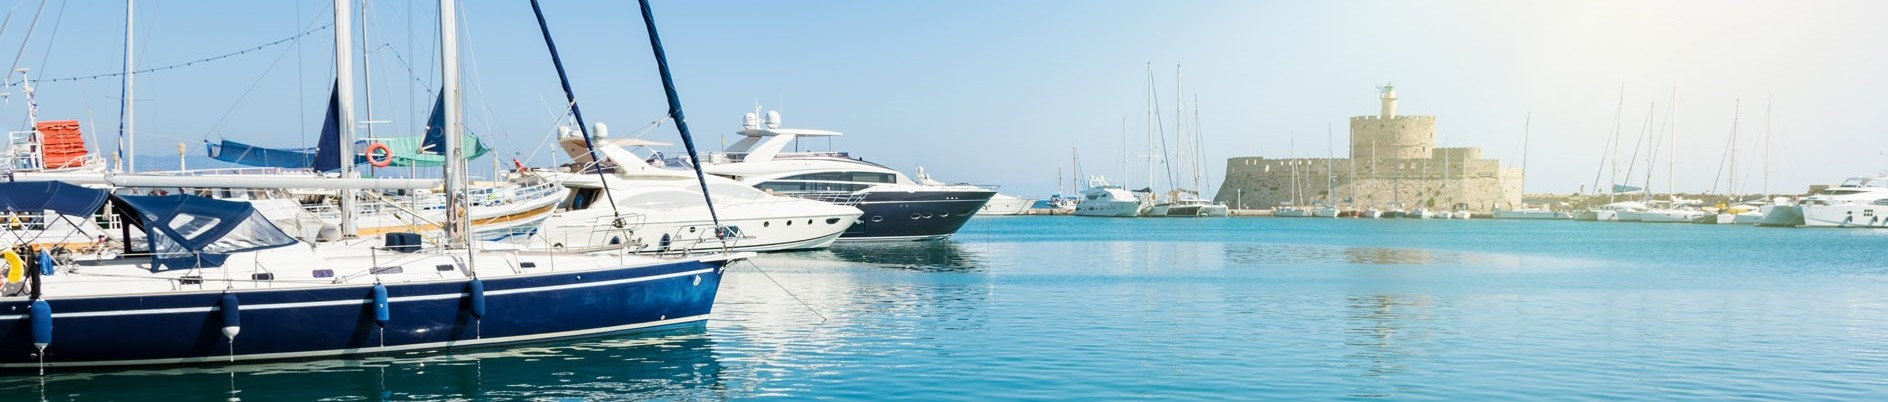 The first Aegean Yachting Festival in April on the island of Rhodes